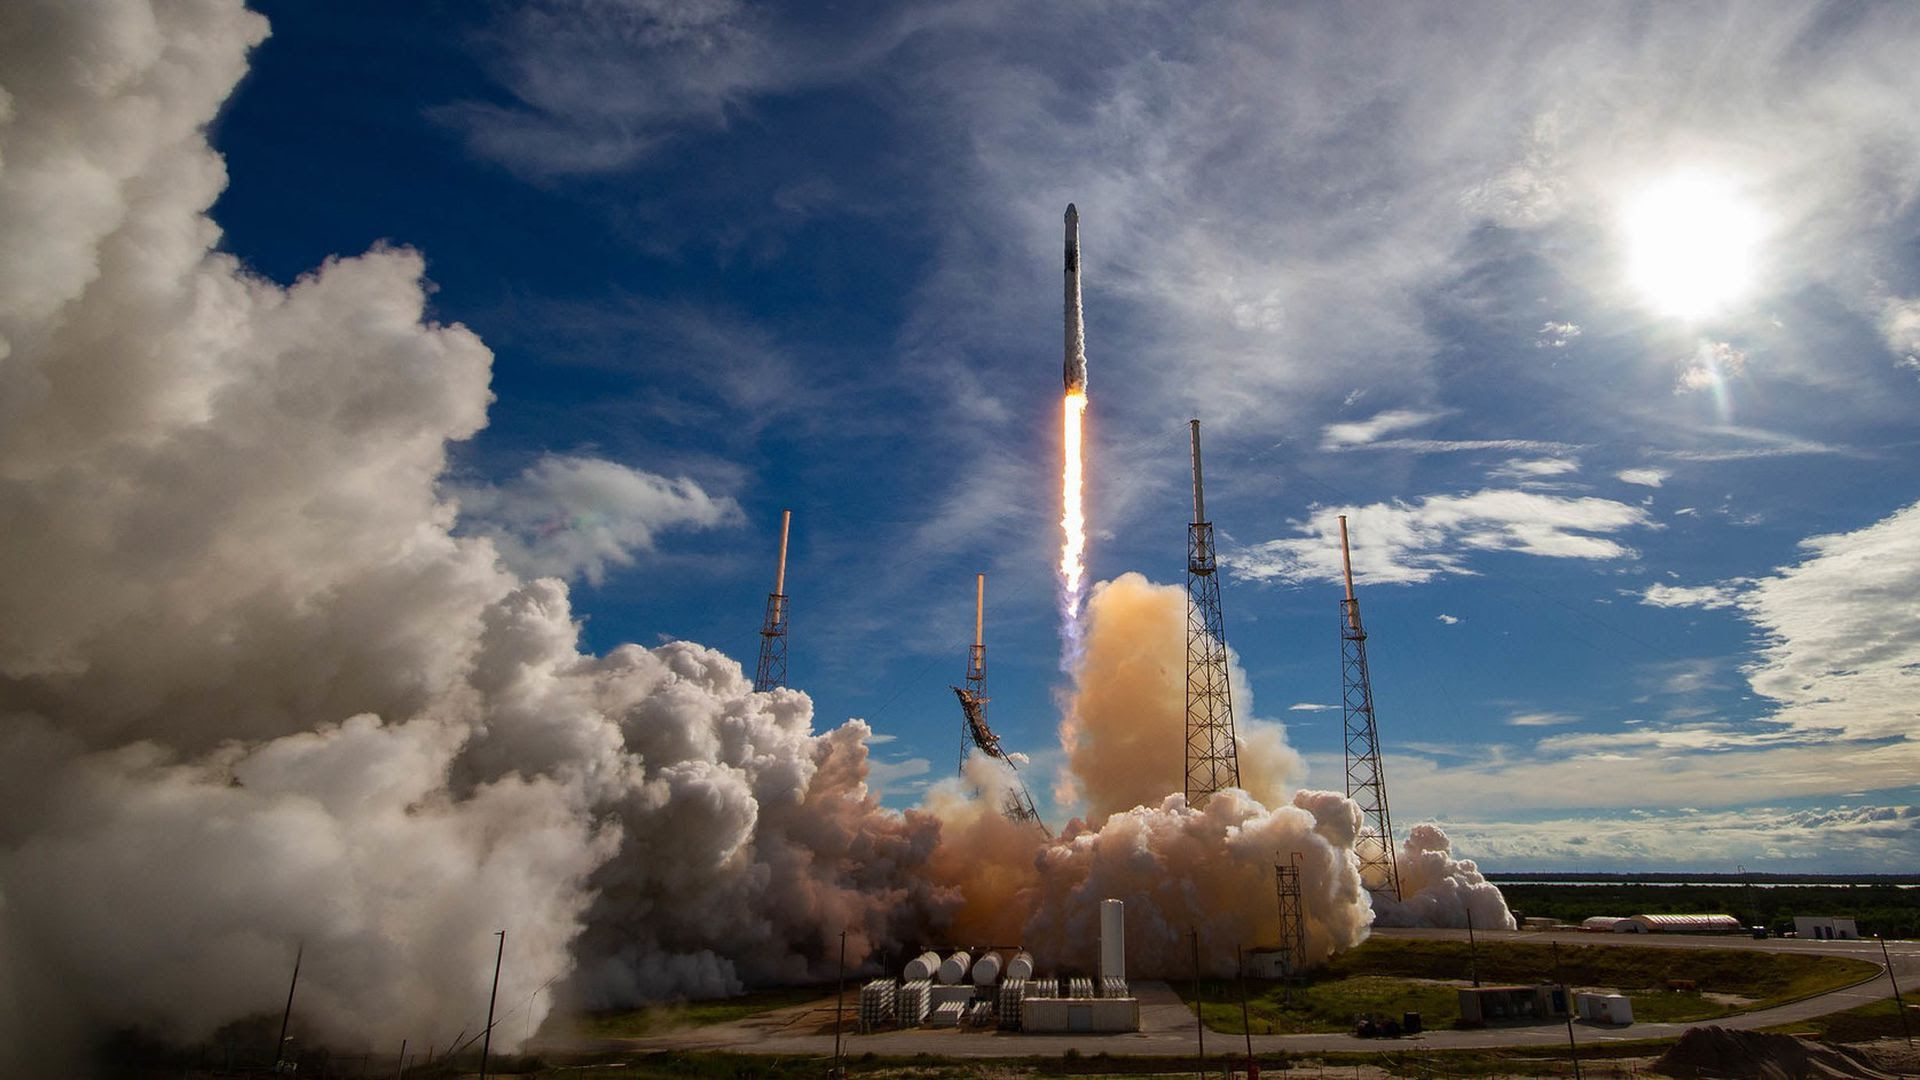 A SpaceX Falcon 9 rocket launching to space. Photo: SpaceX